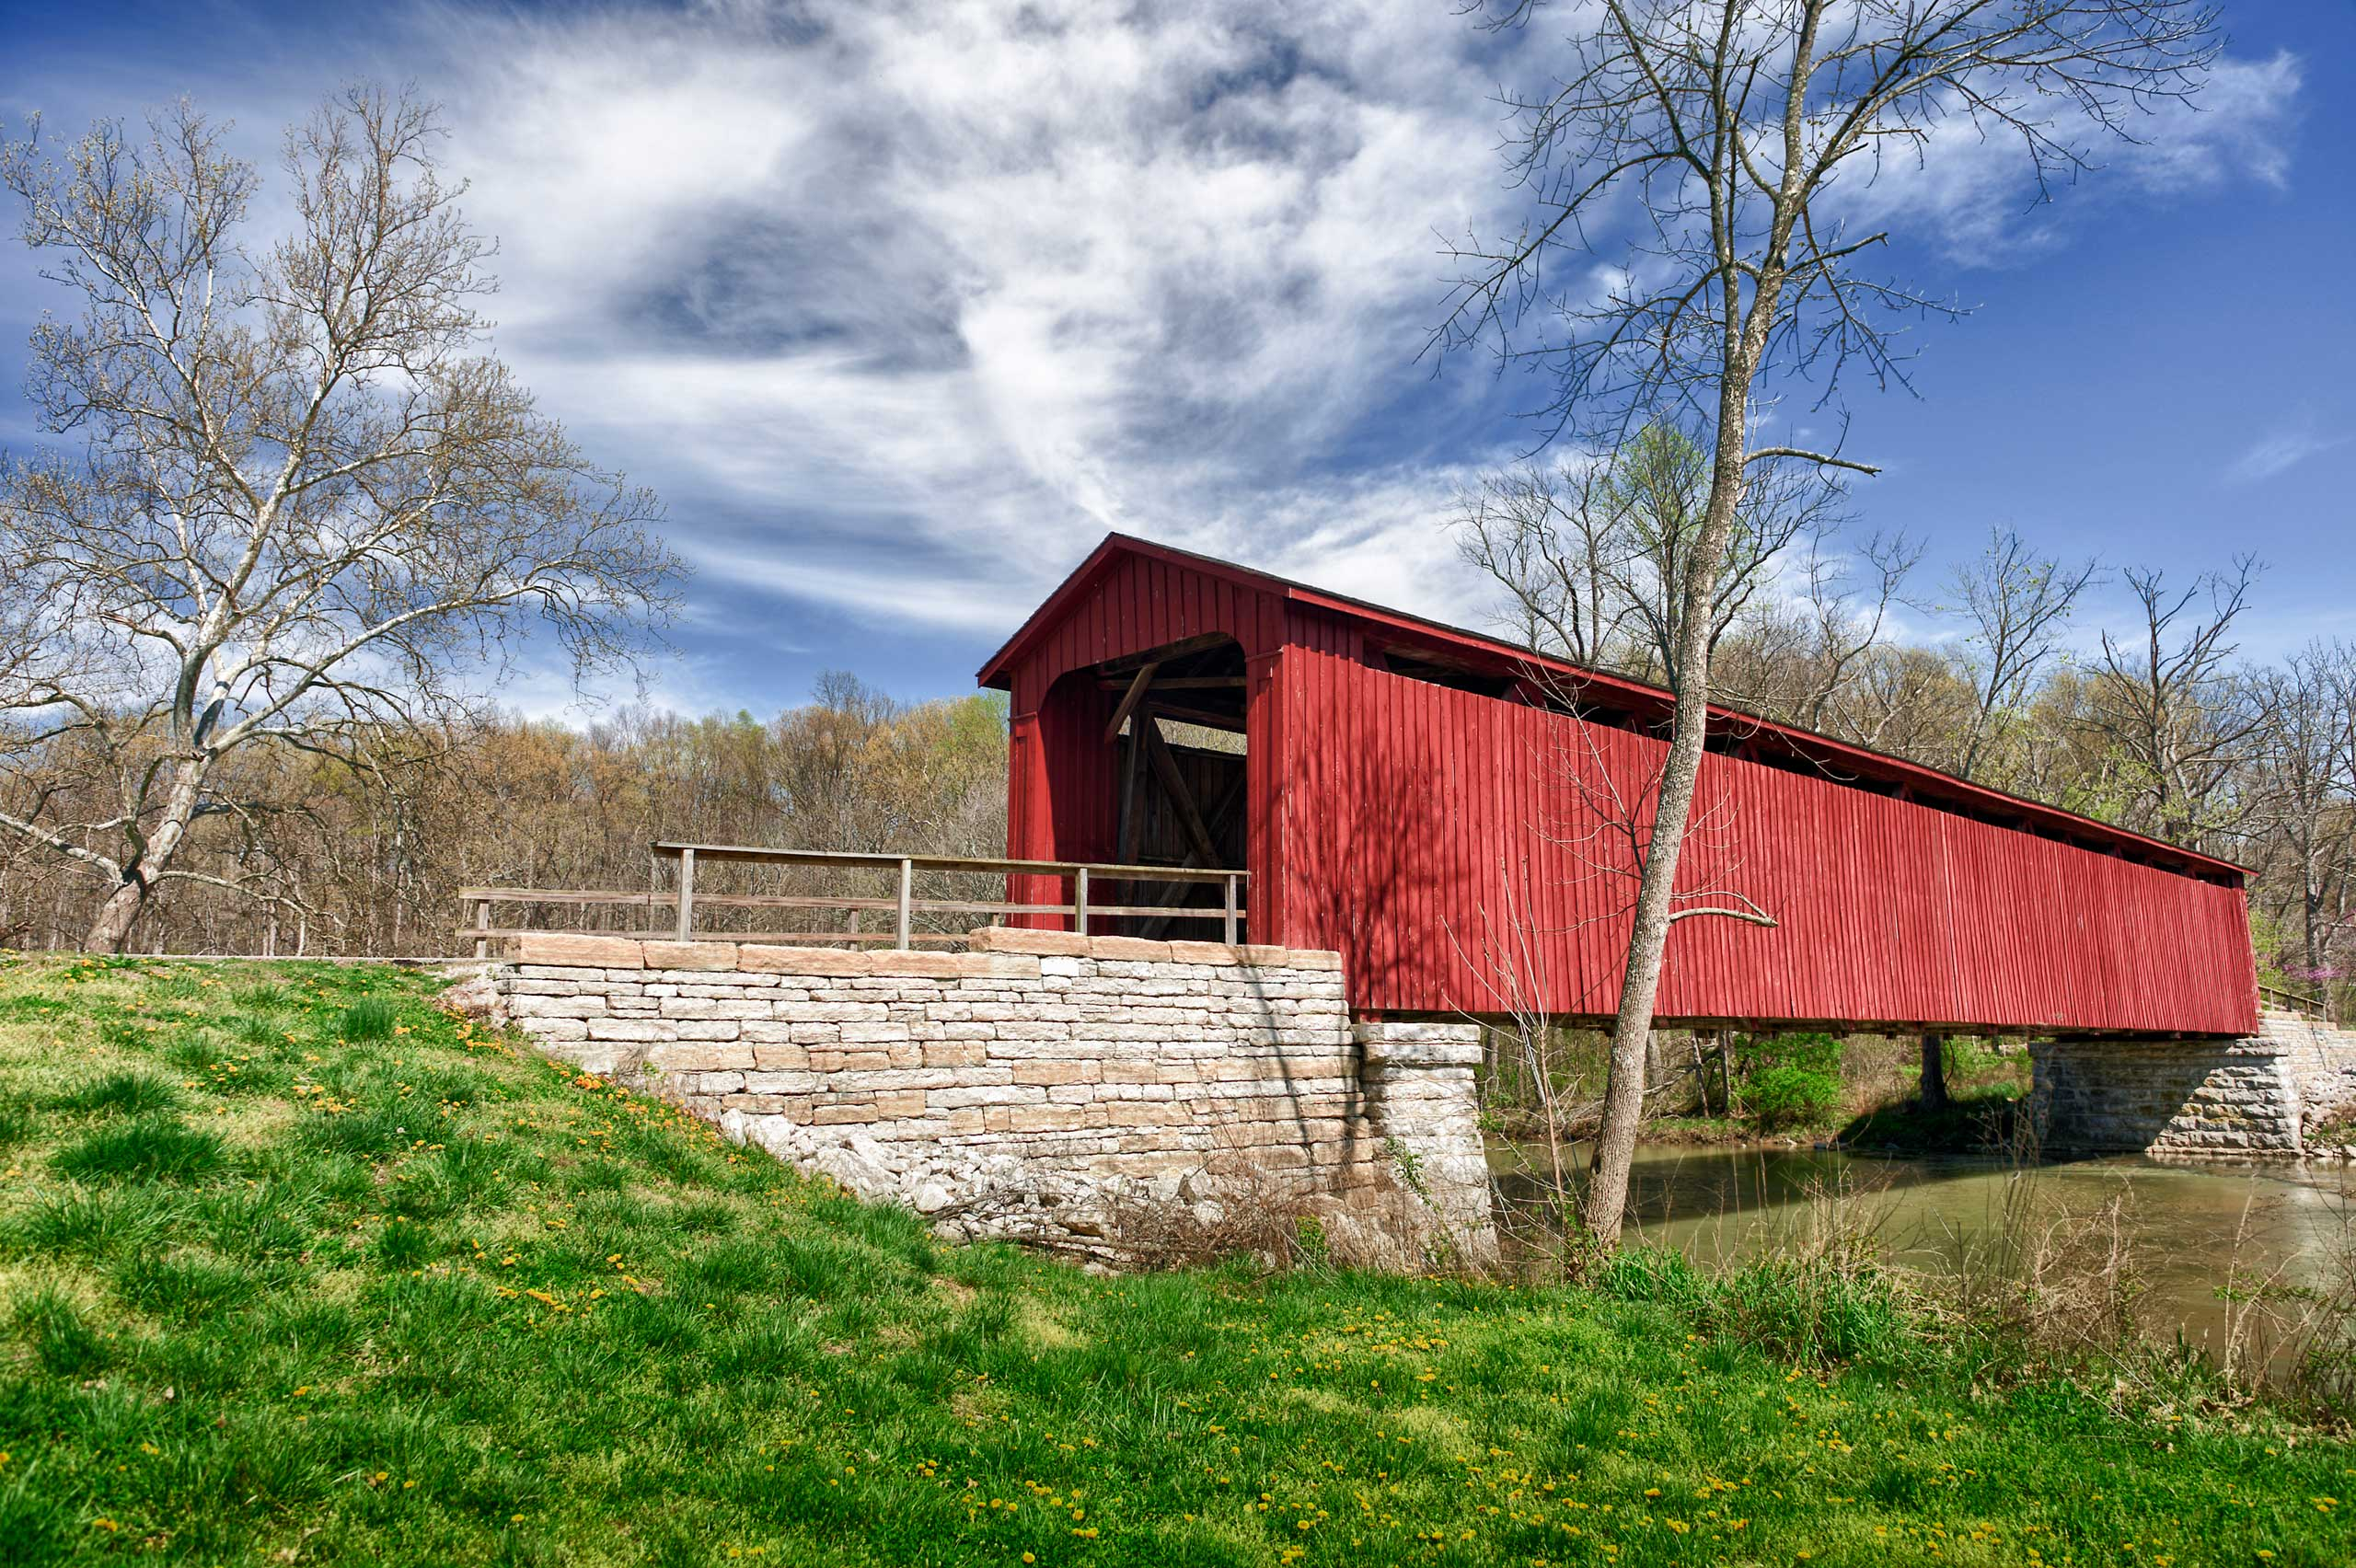 I mean, look at that covered bridge.